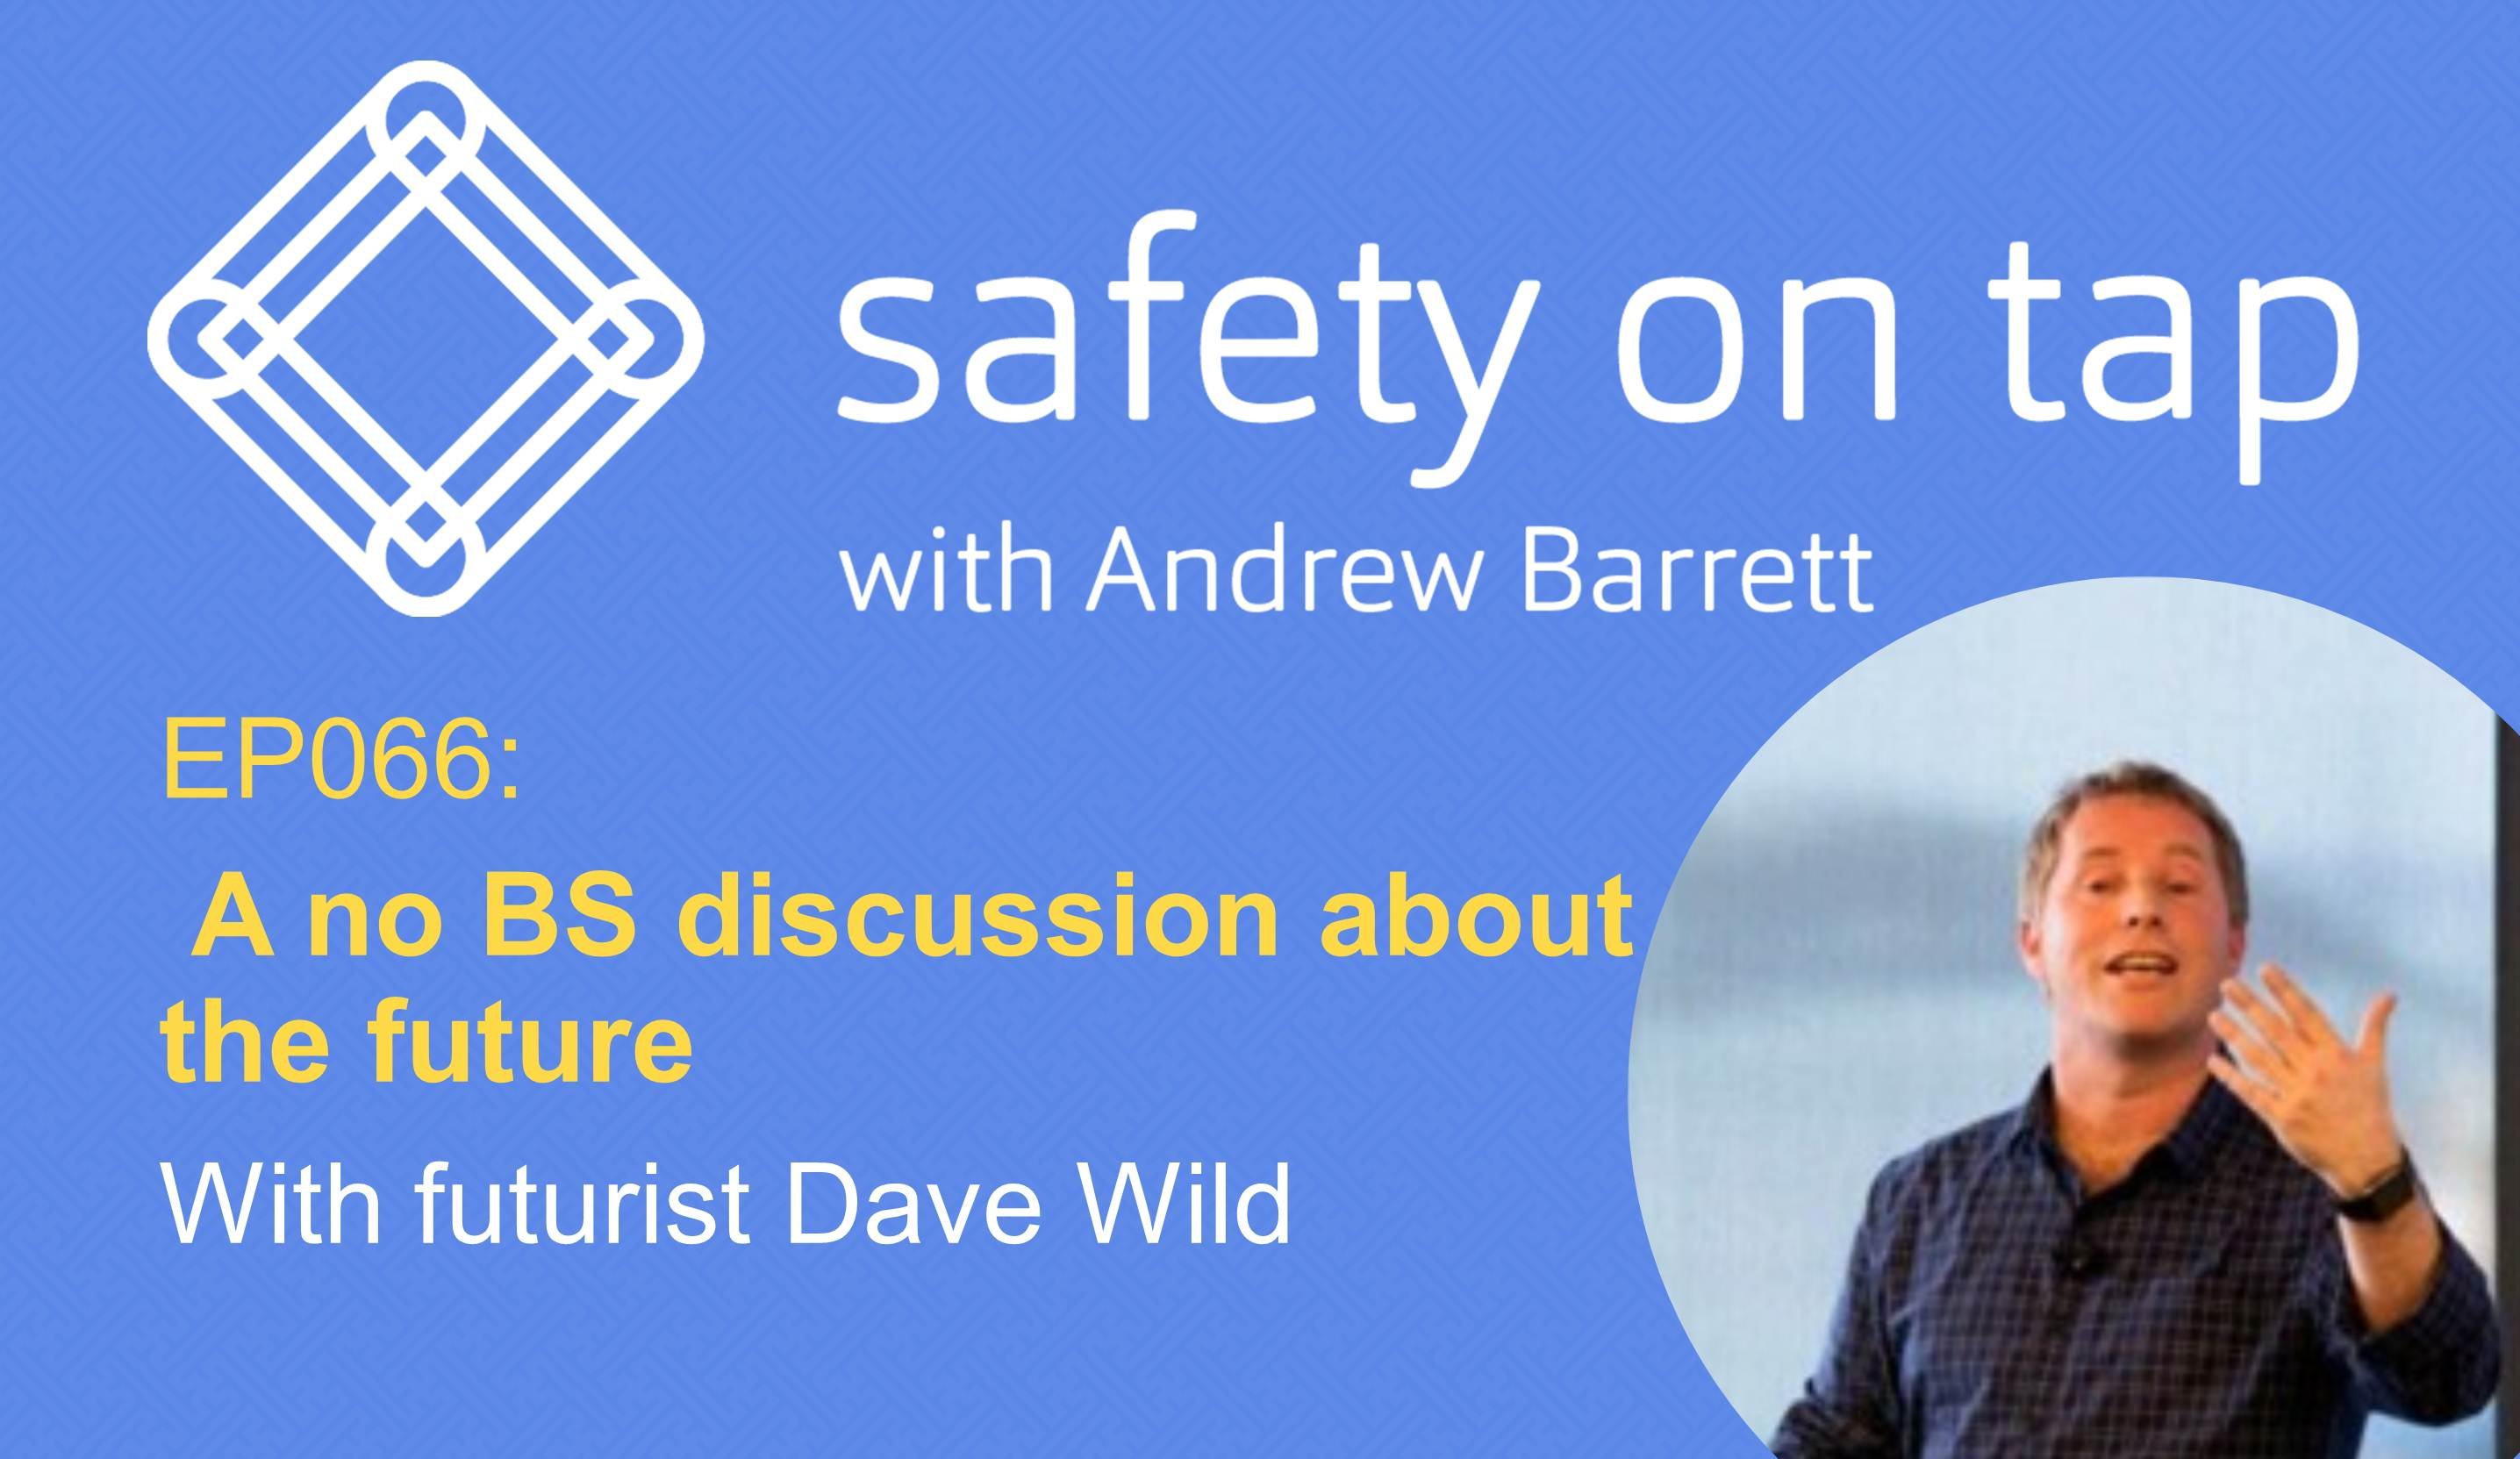 Ep066: A no BS discussion about the future, with futurist Dave Wild